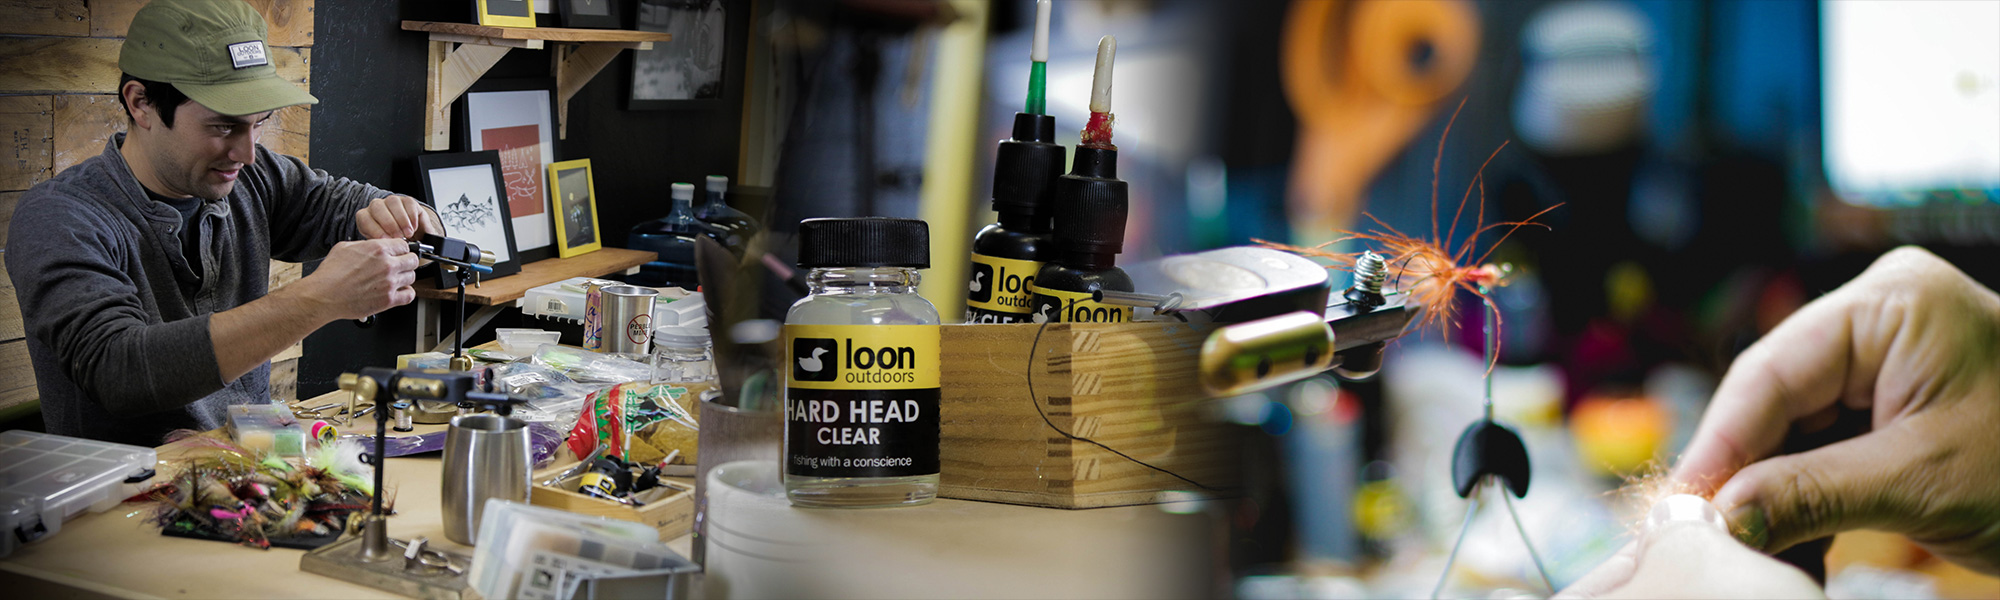 Fly tying and other products by Loon Outdoors